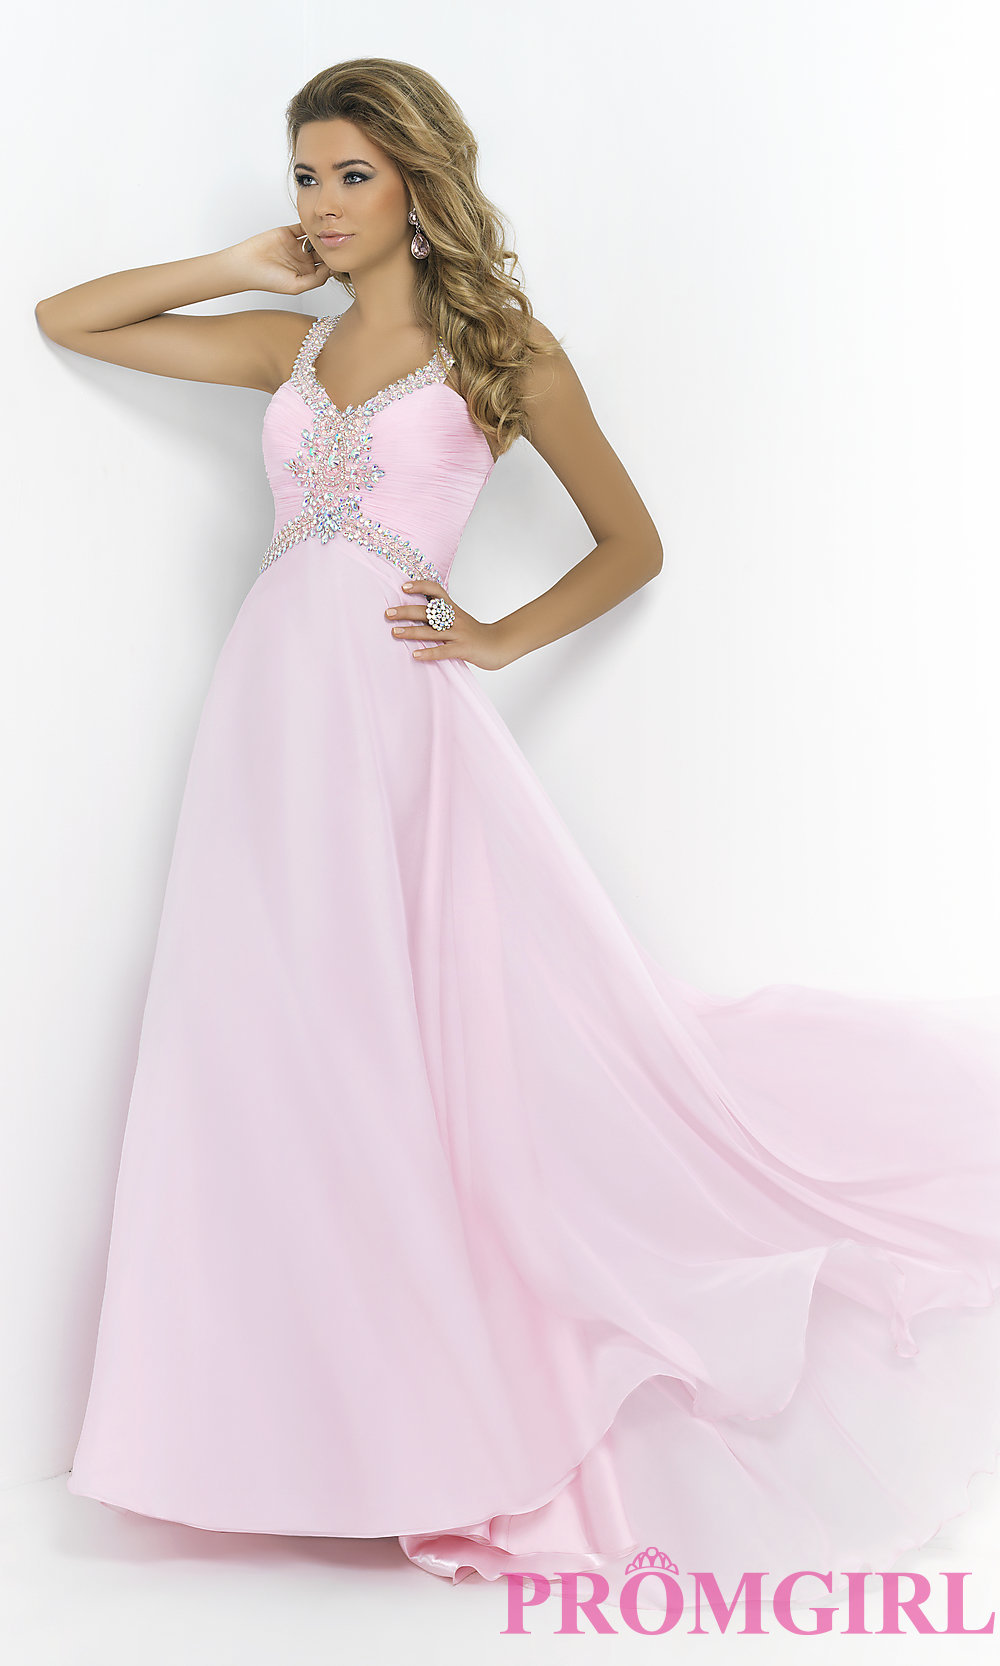 blush prom dresses hover to zoom MOKLIDZ